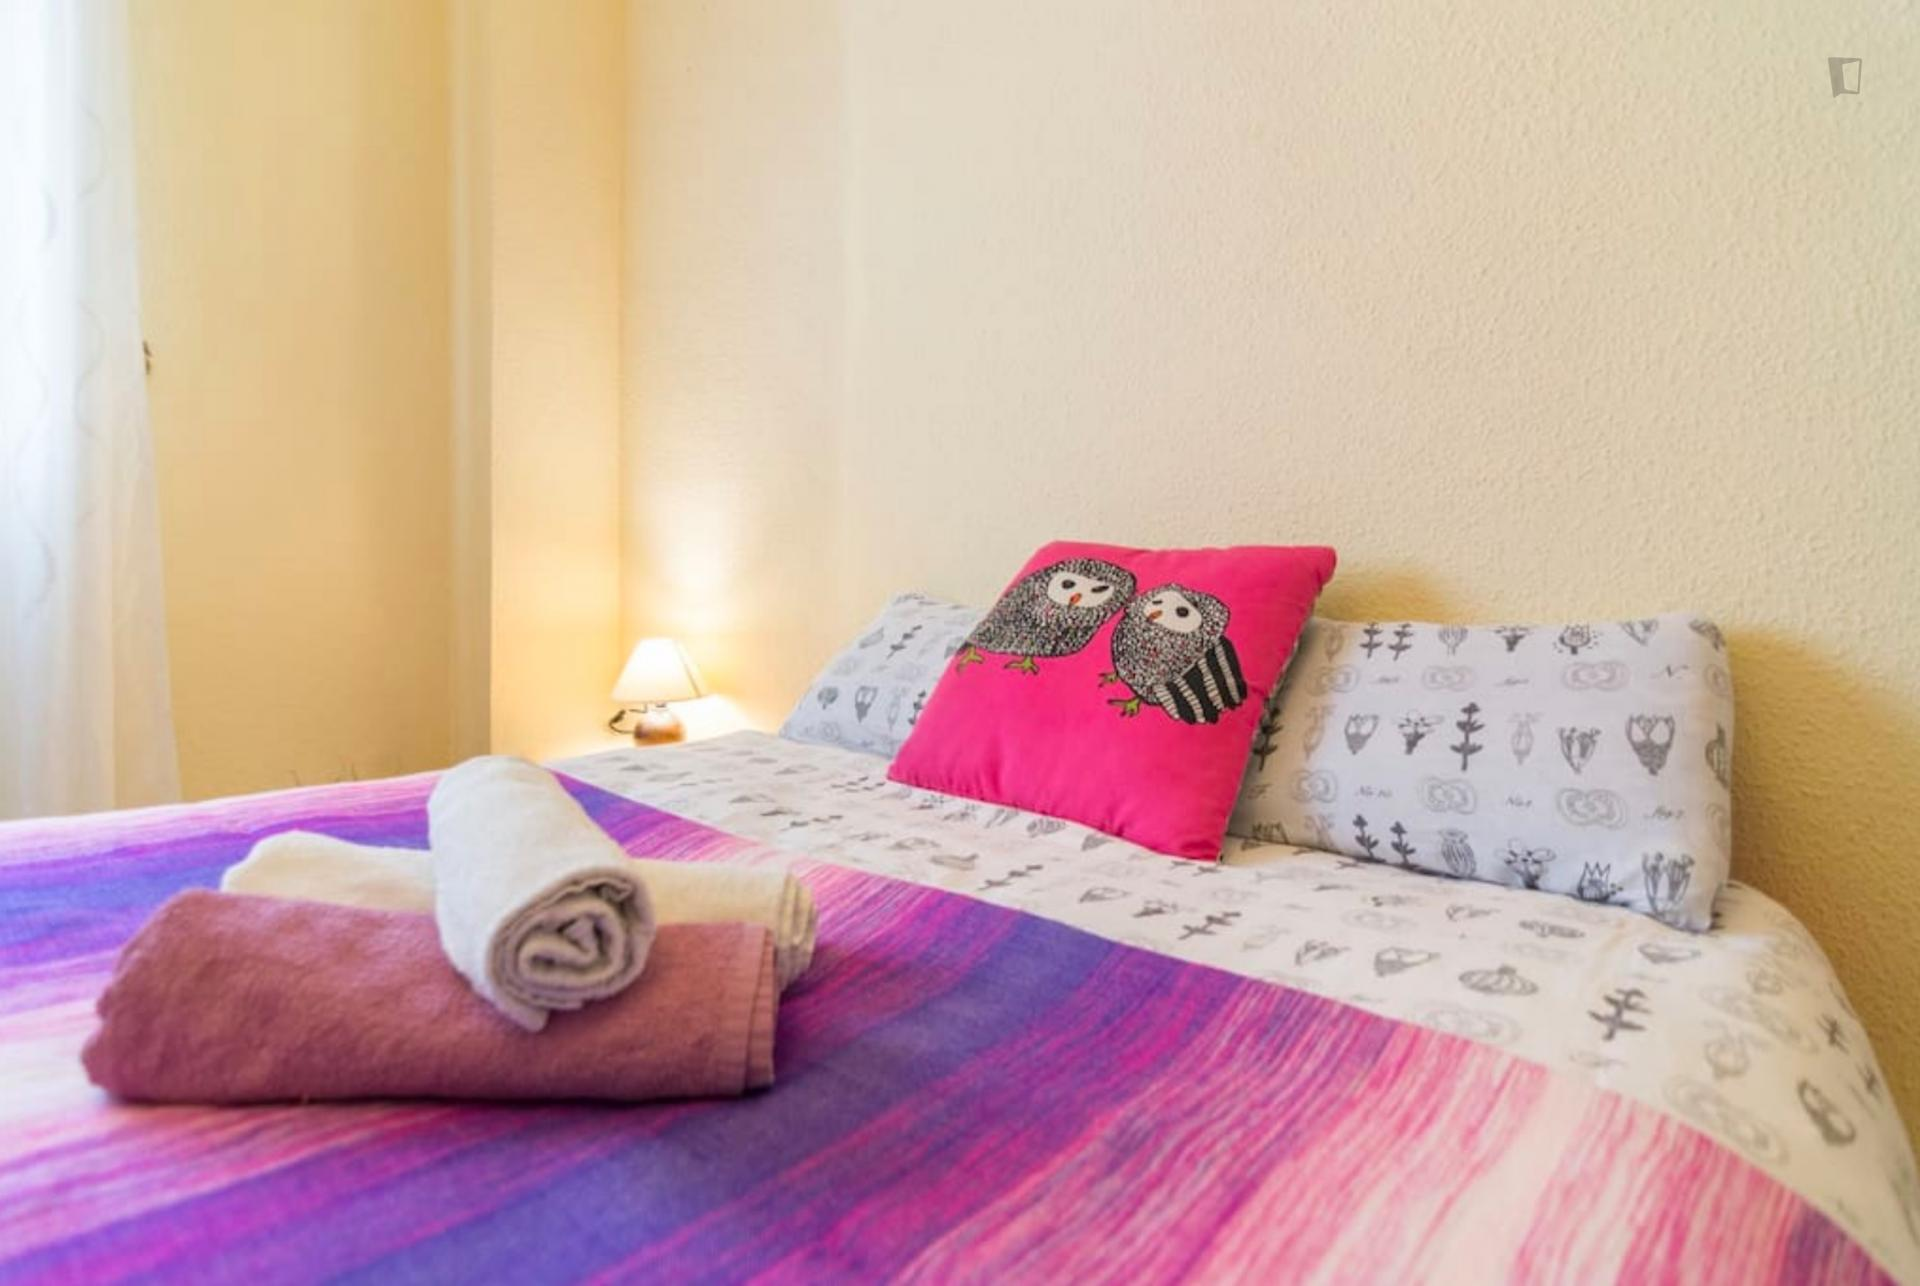 Litoral 2- Bright bedroom in shared flat in Malaga